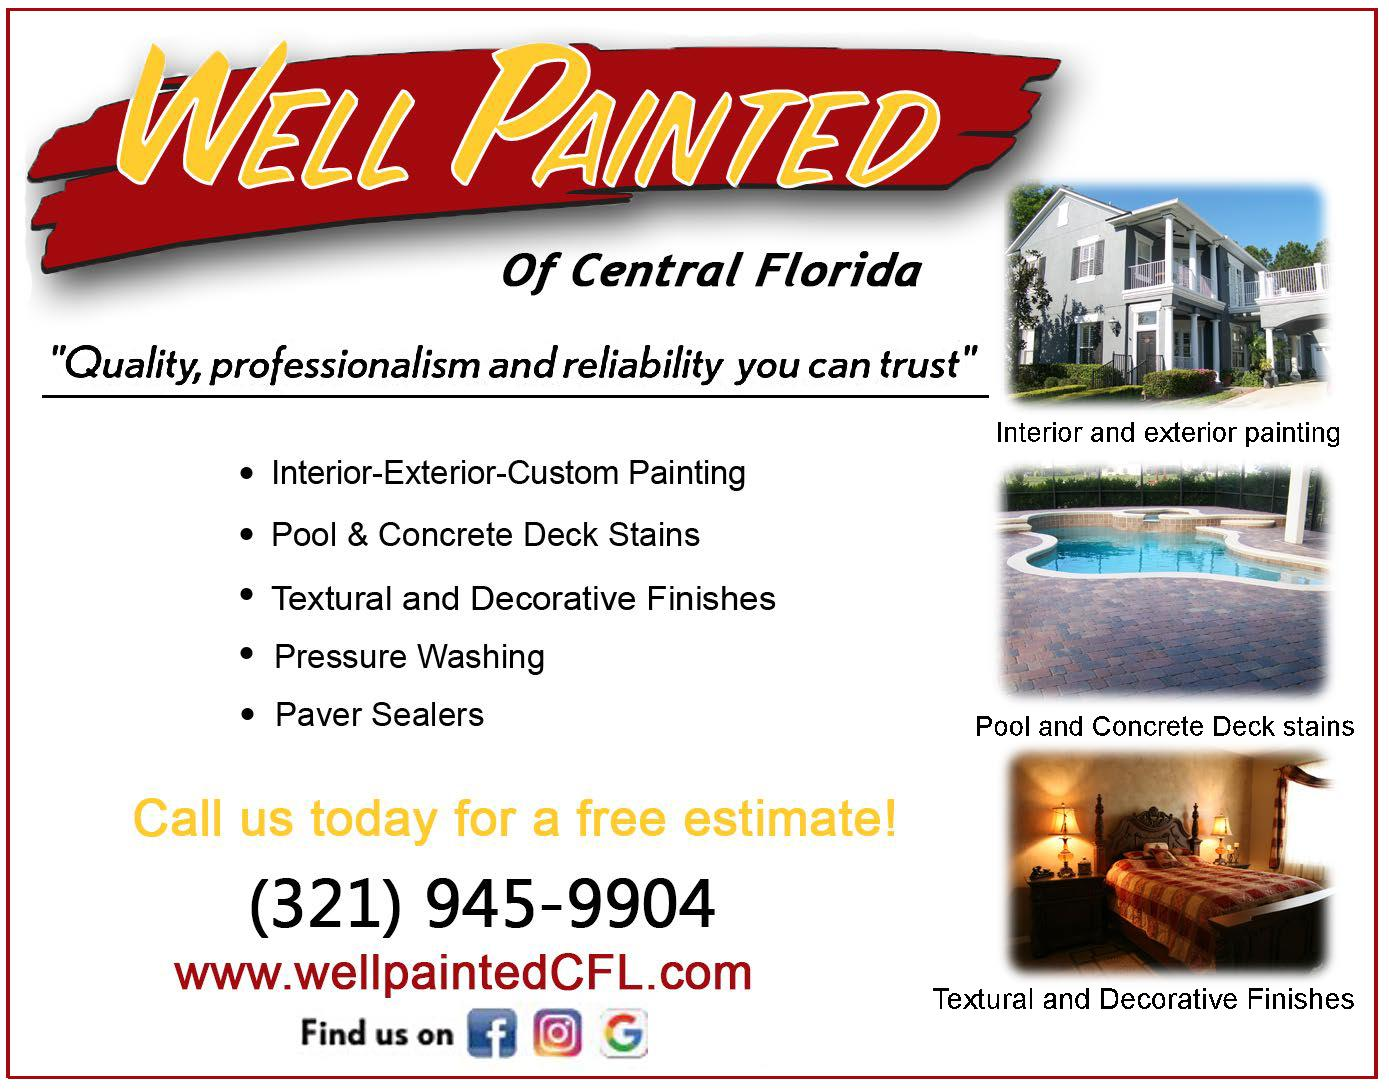 Well Painted of Central Florida